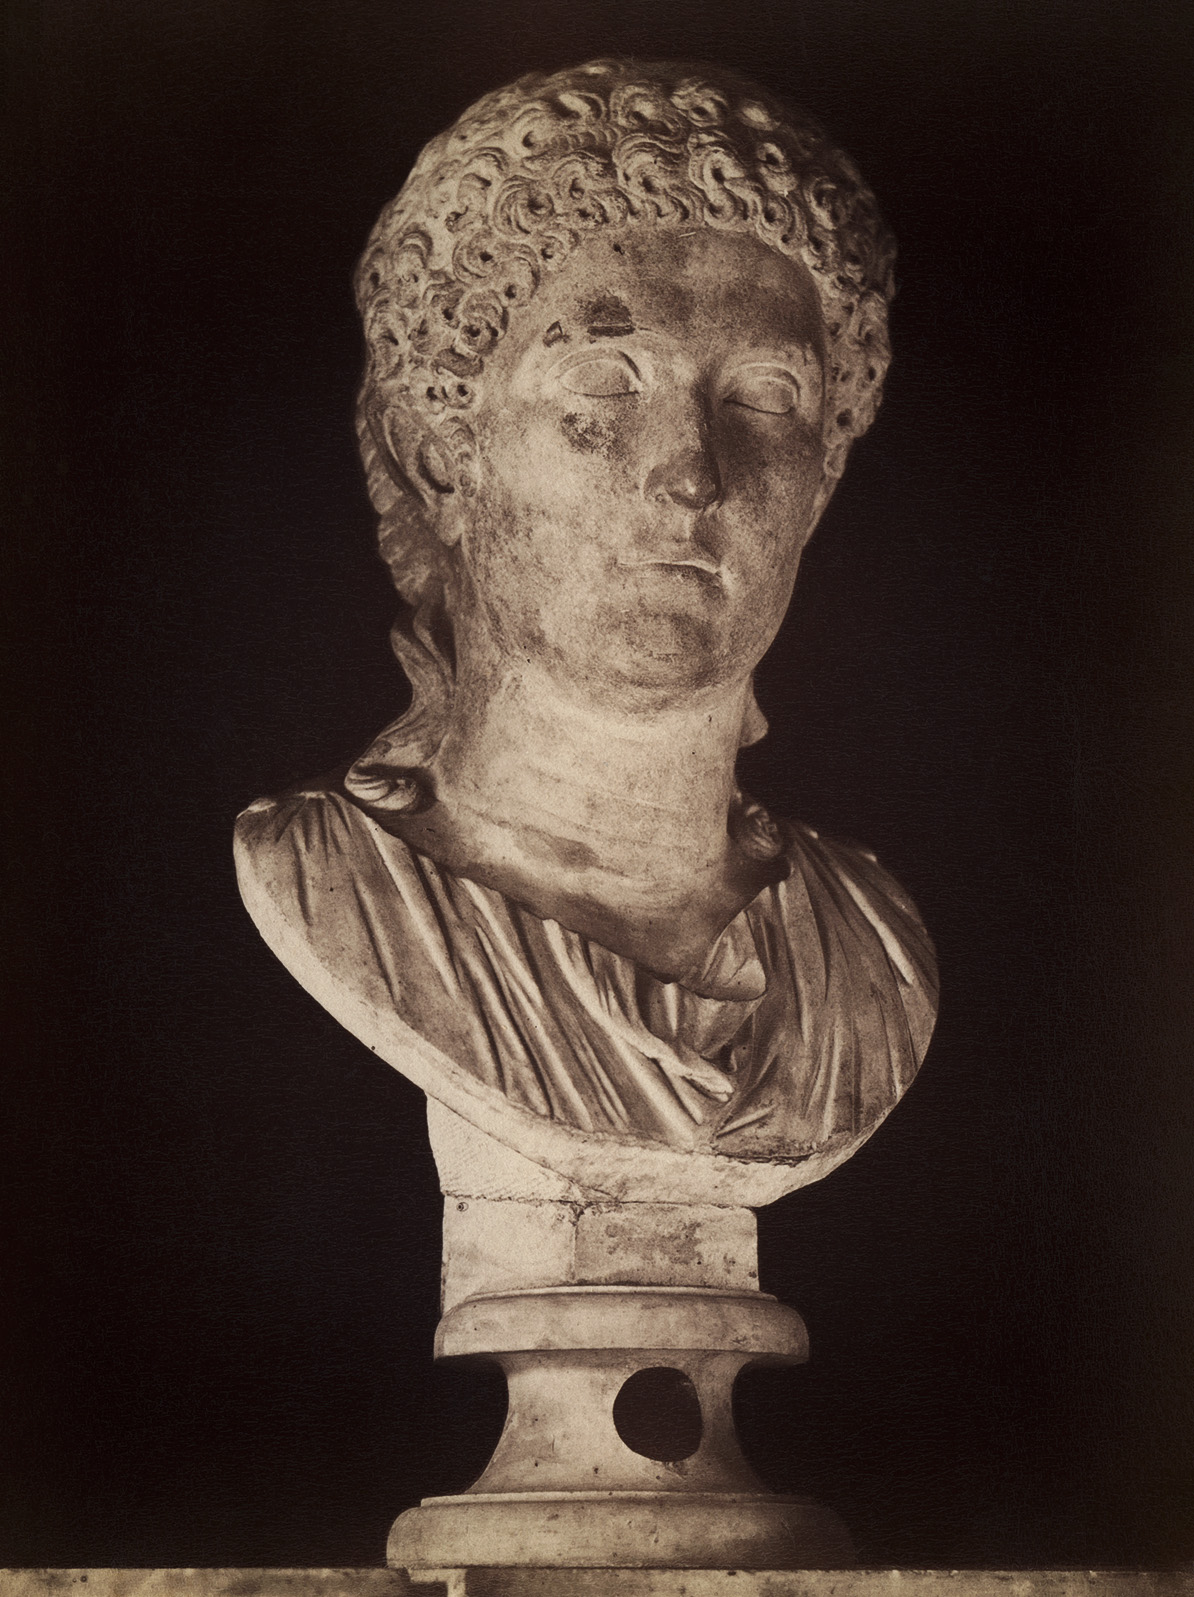 Agrippina the Younger, the daughter of Germanicus. Marble. 1st century. Rome, Capitoline Museums, Palazzo Nuovo, Hall of the Emperors